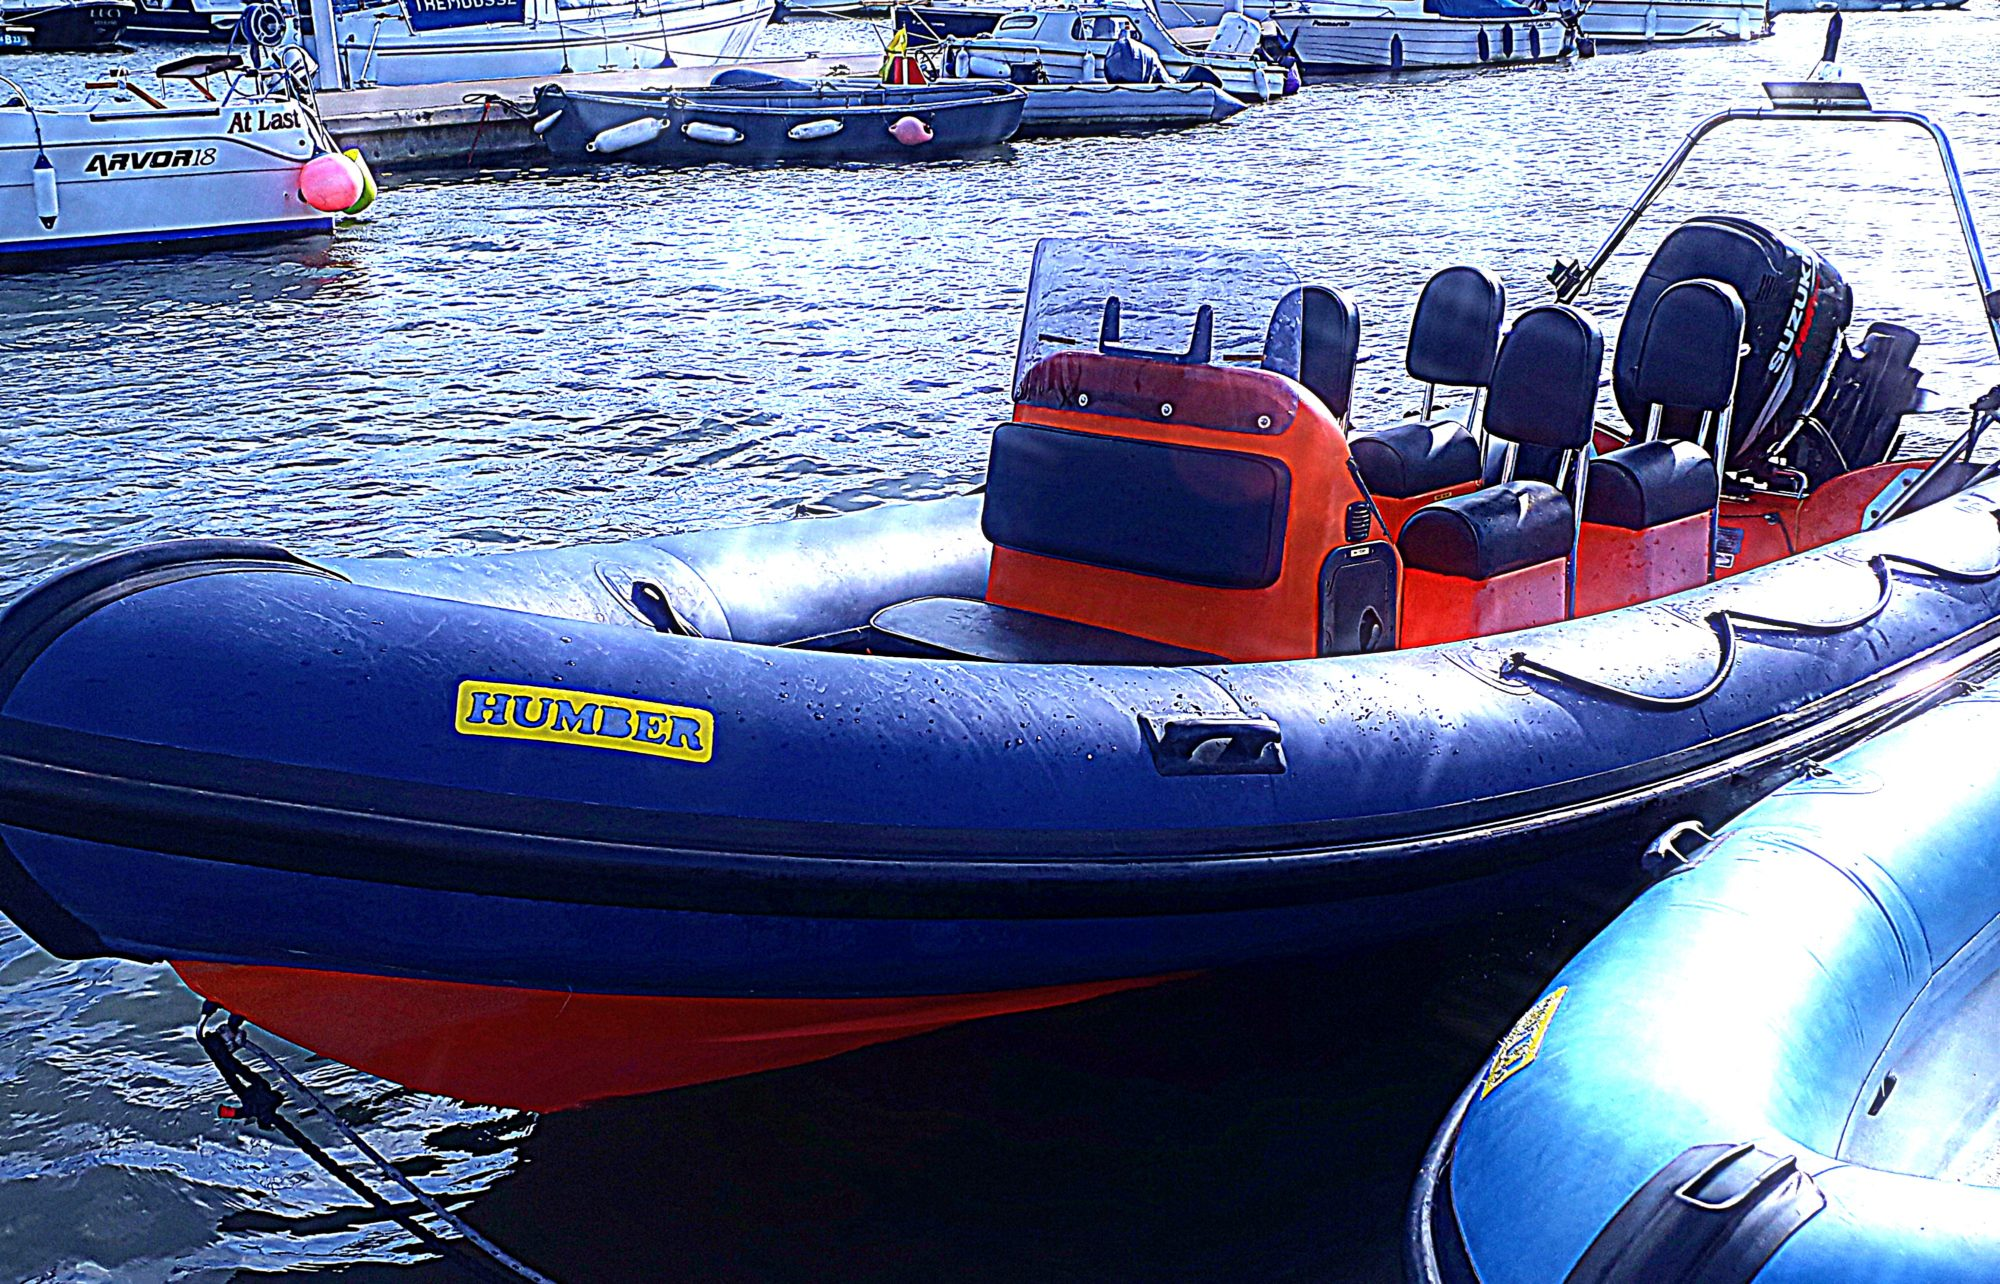 Blue and orange Humber RIB with 4 seats in the water at Mylor Sailing School Falmouth Cornwall